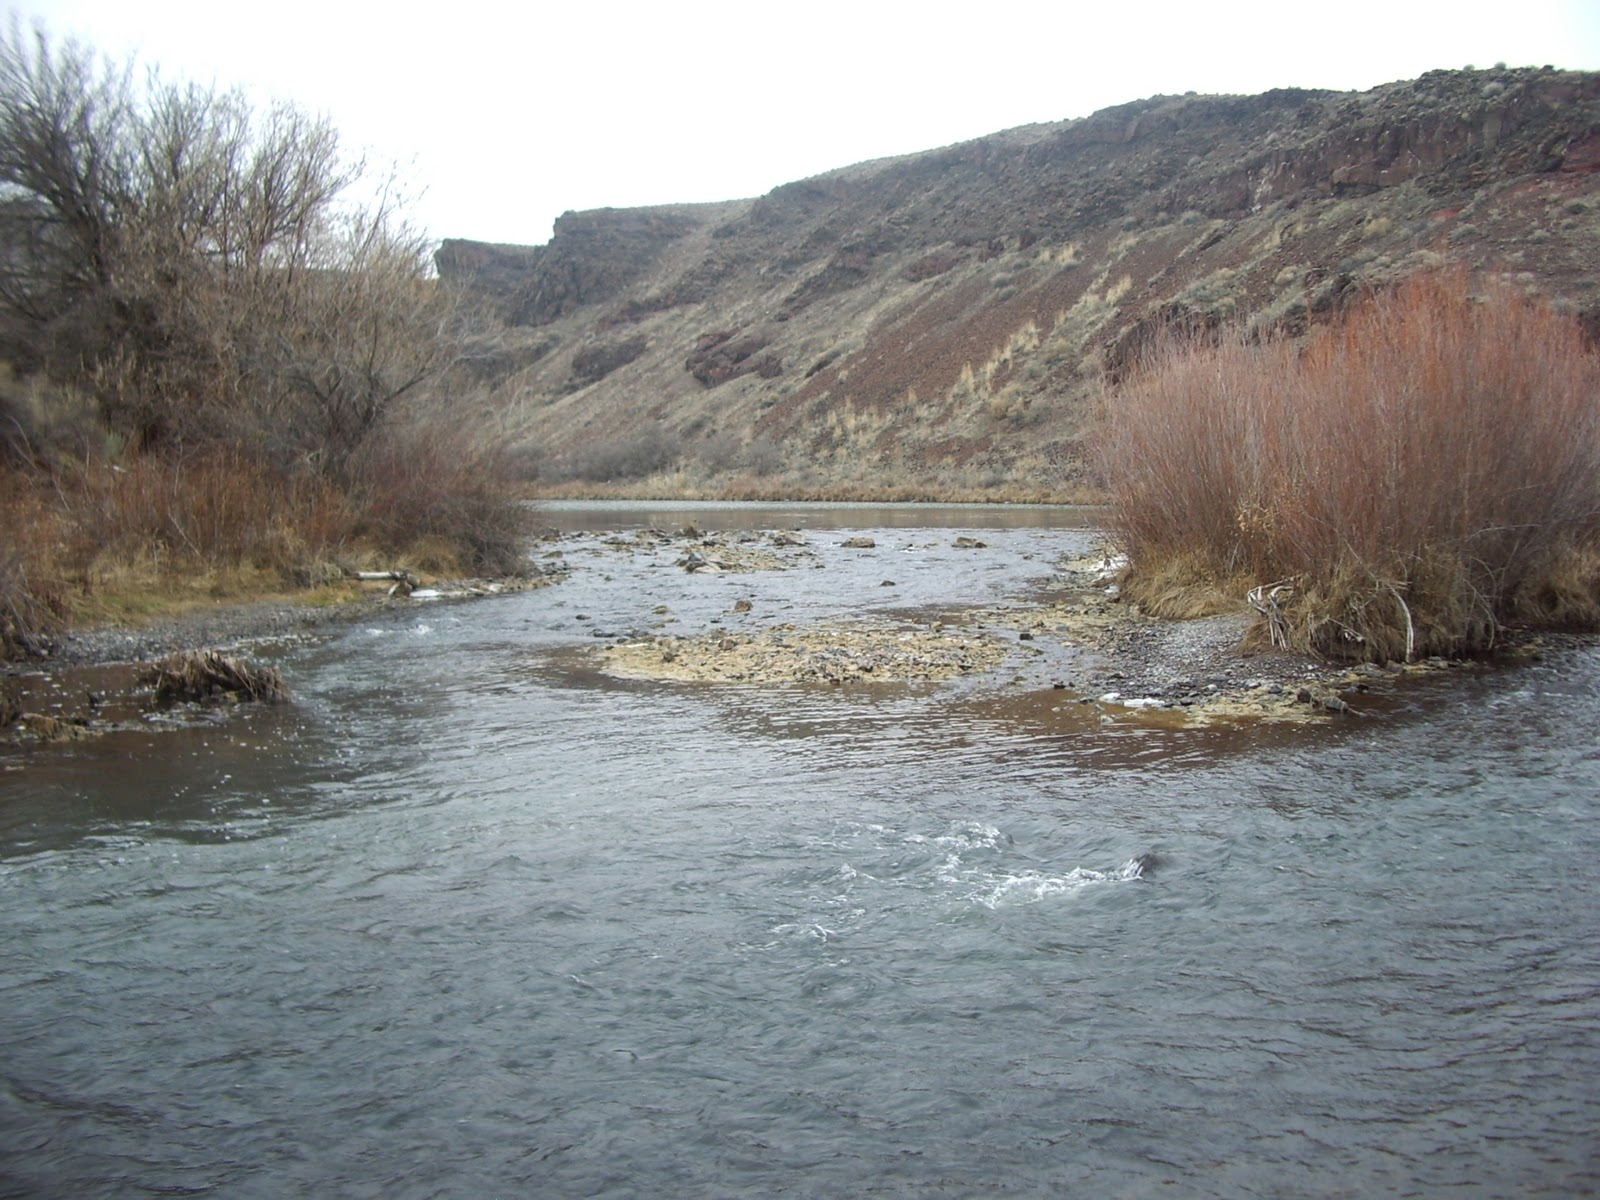 Come and find me owyhee river oregon january 27 2011 for Owyhee river fly fishing